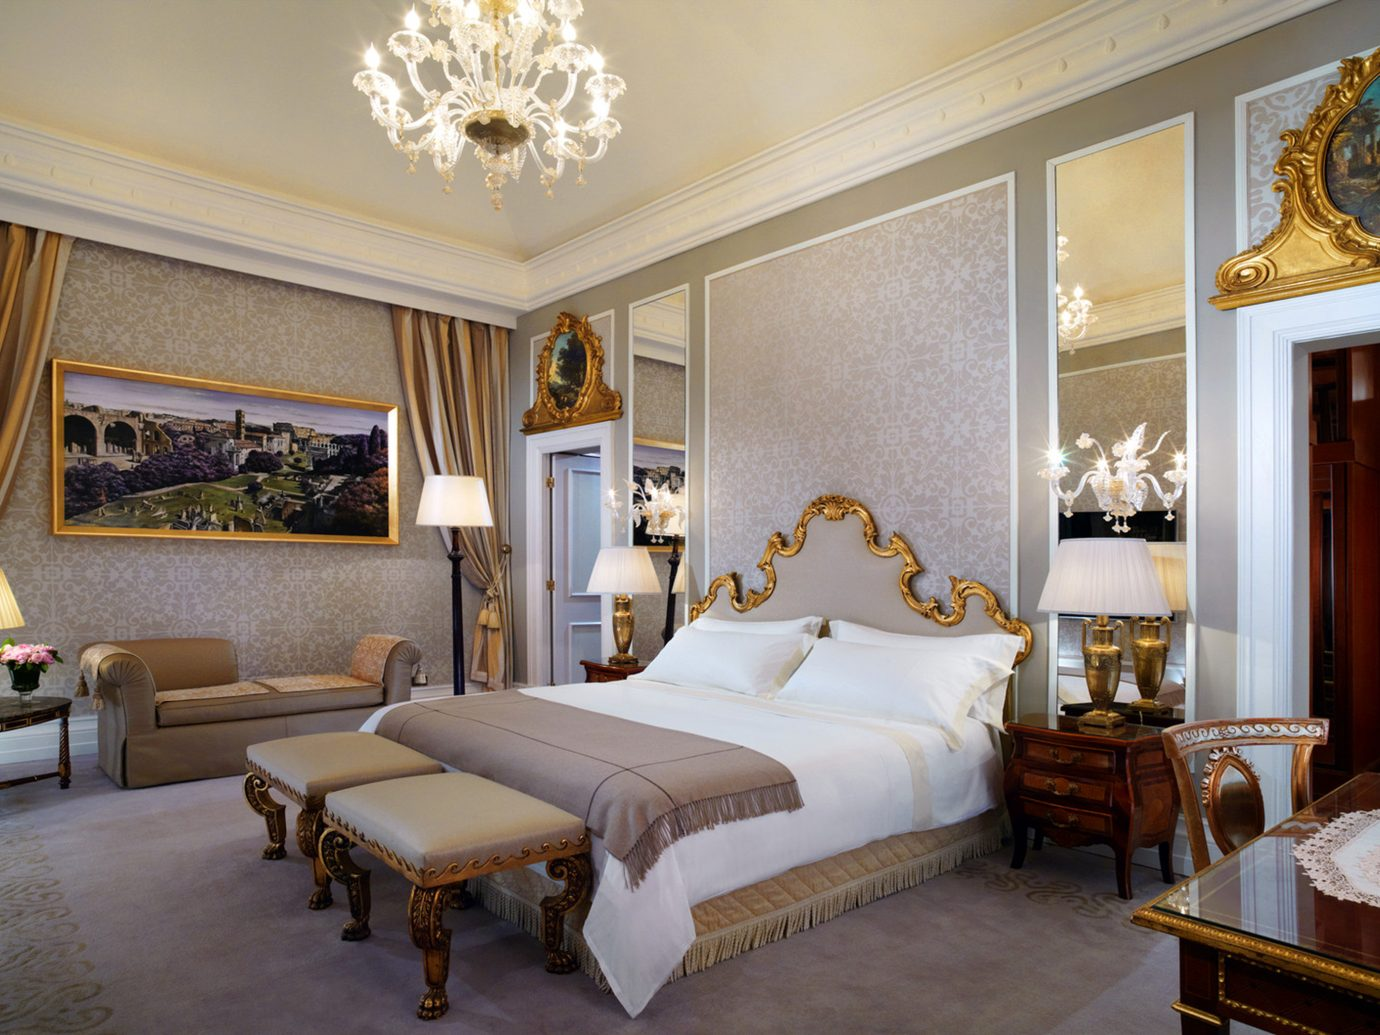 Bedroom Boutique Hotels City Italy Luxury Luxury Travel Romantic Romantic Hotels Rome indoor wall floor room bed property estate ceiling Suite living room interior design home real estate mansion Resort Villa decorated furniture